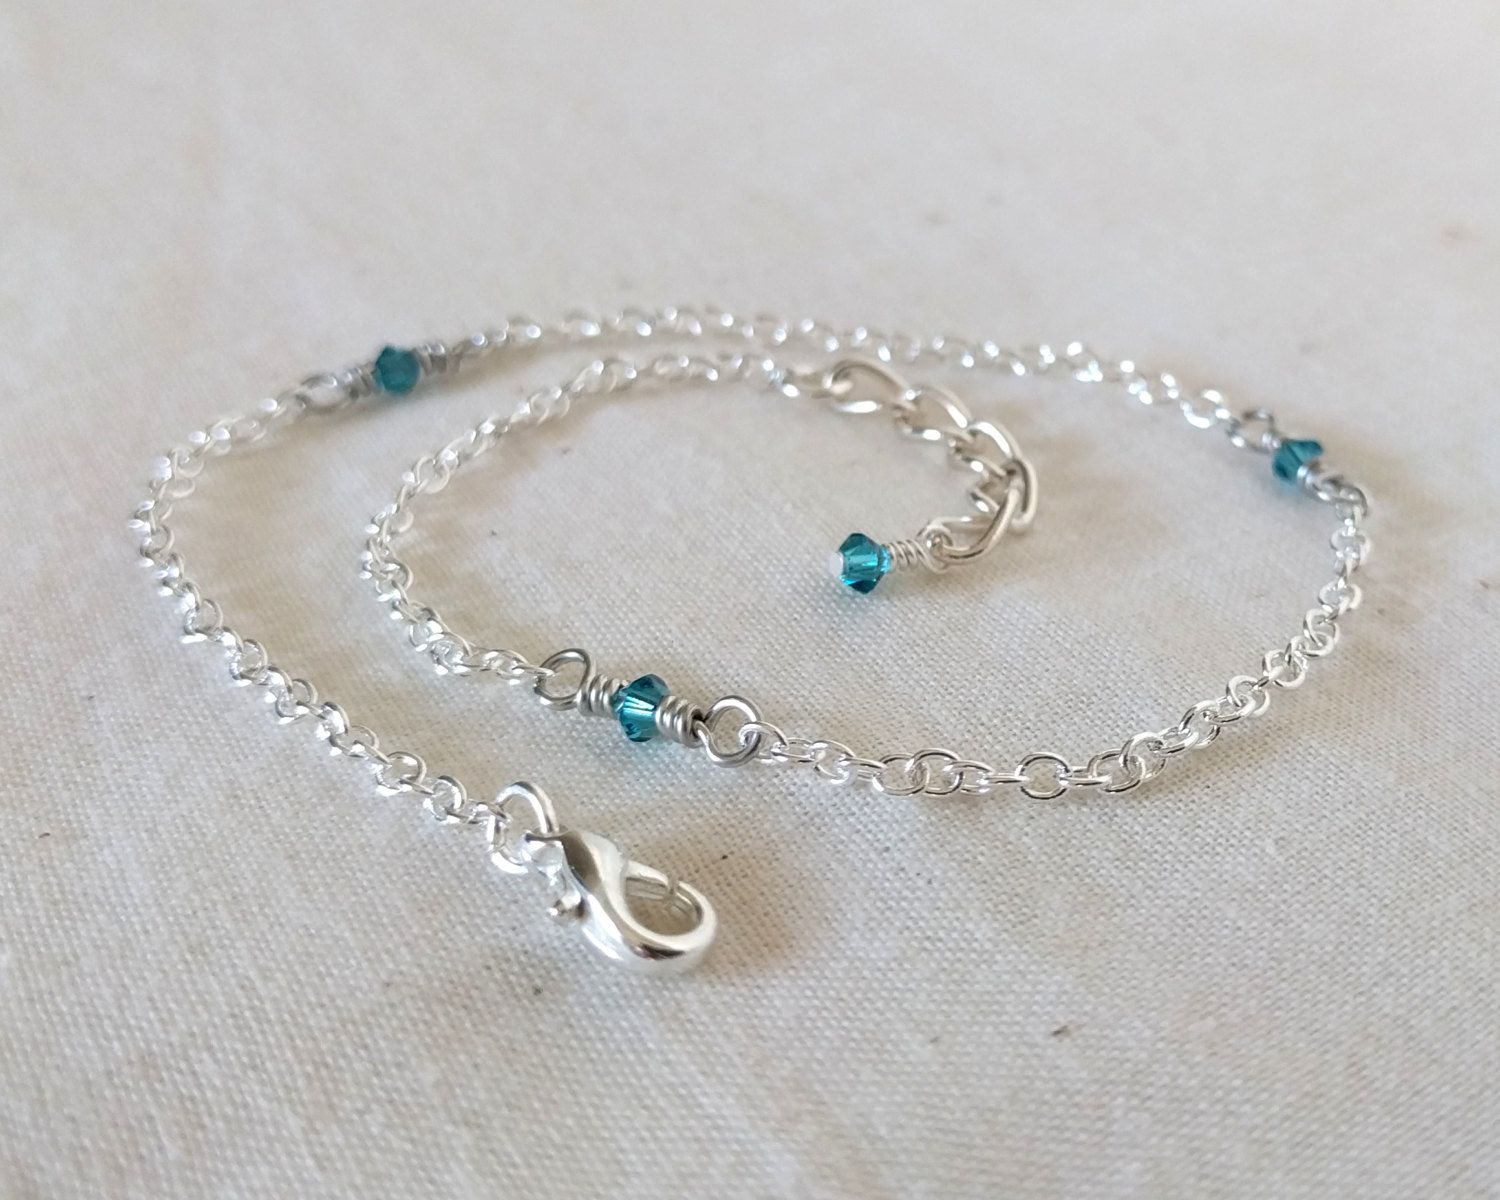 Pee Blue Swarovski Crystal Anklet And Silver Ankle Bracelet Beach Something By Rdaydreams On Etsy